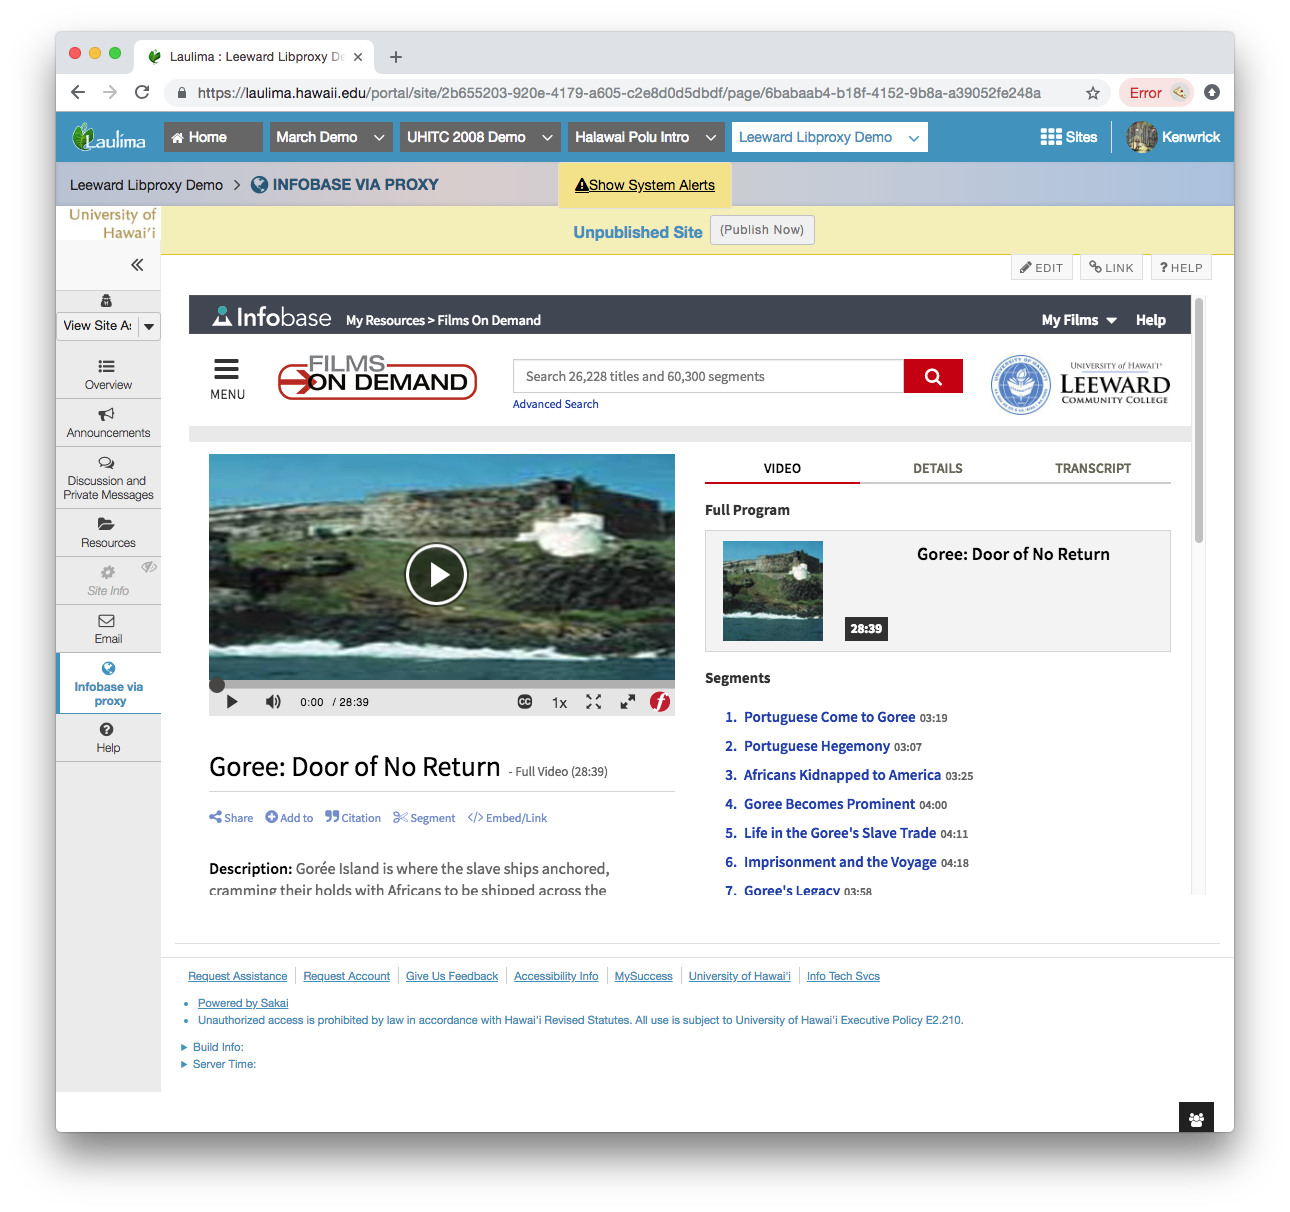 Screenshot of web content shown in a Laulima screen